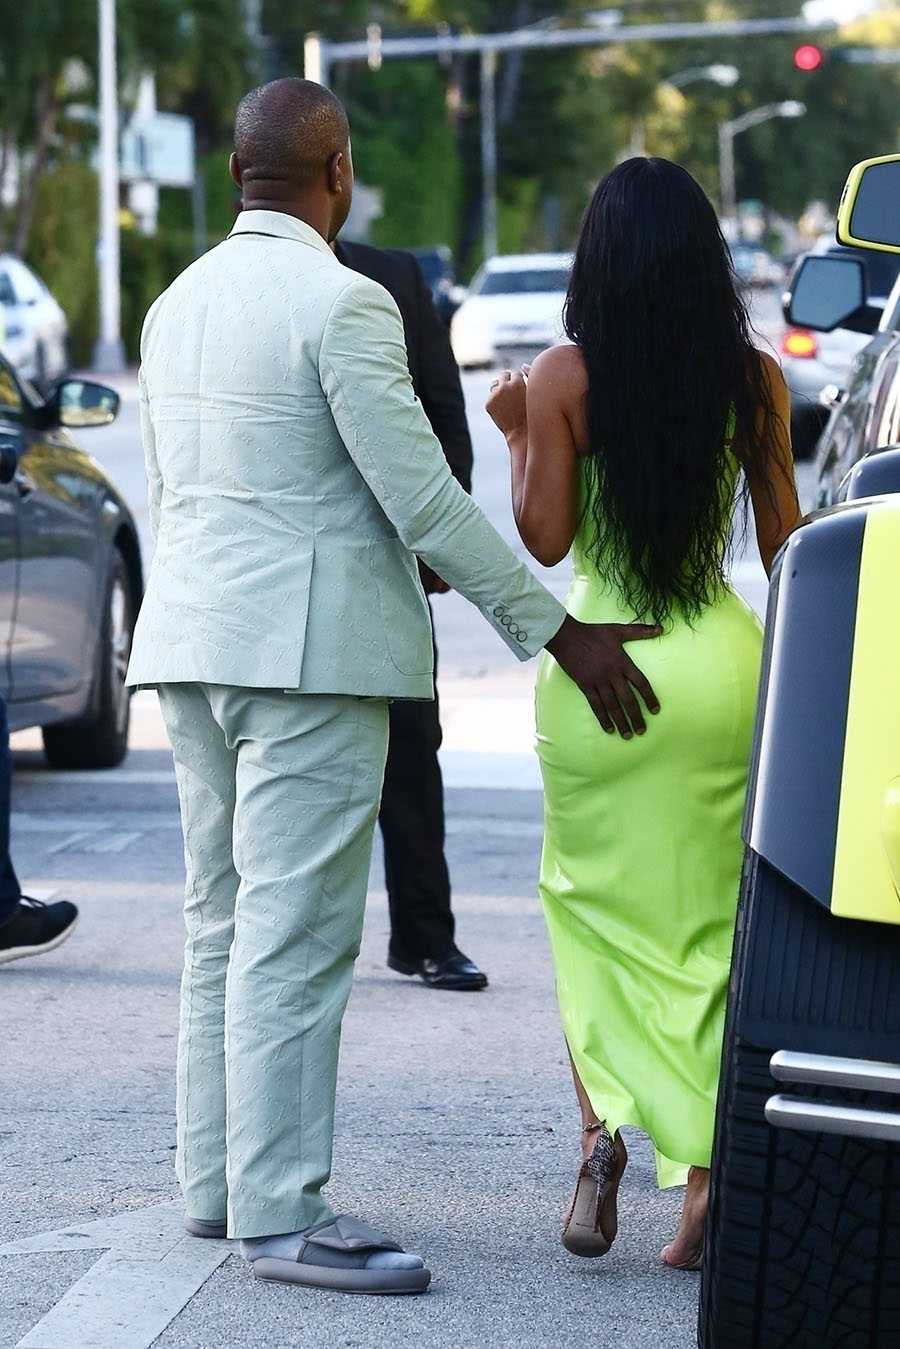 Kim Kardashian gets a helping hand from her man Kanye West